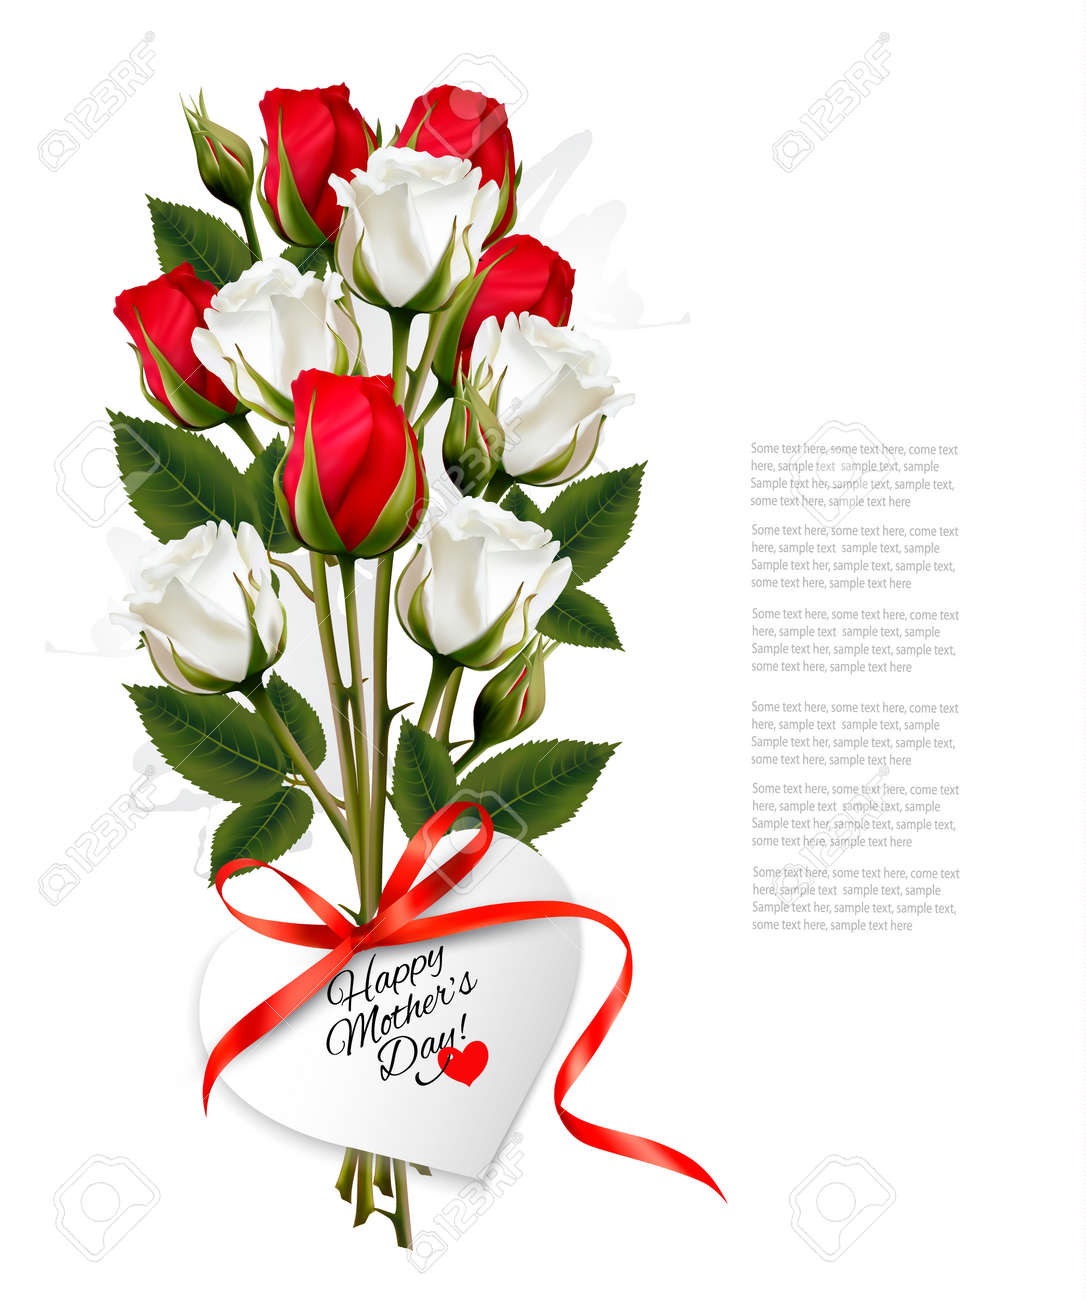 Bouquet of roses with a heart-shaped Happy Mother's Day note and red ribbon. - 55998897